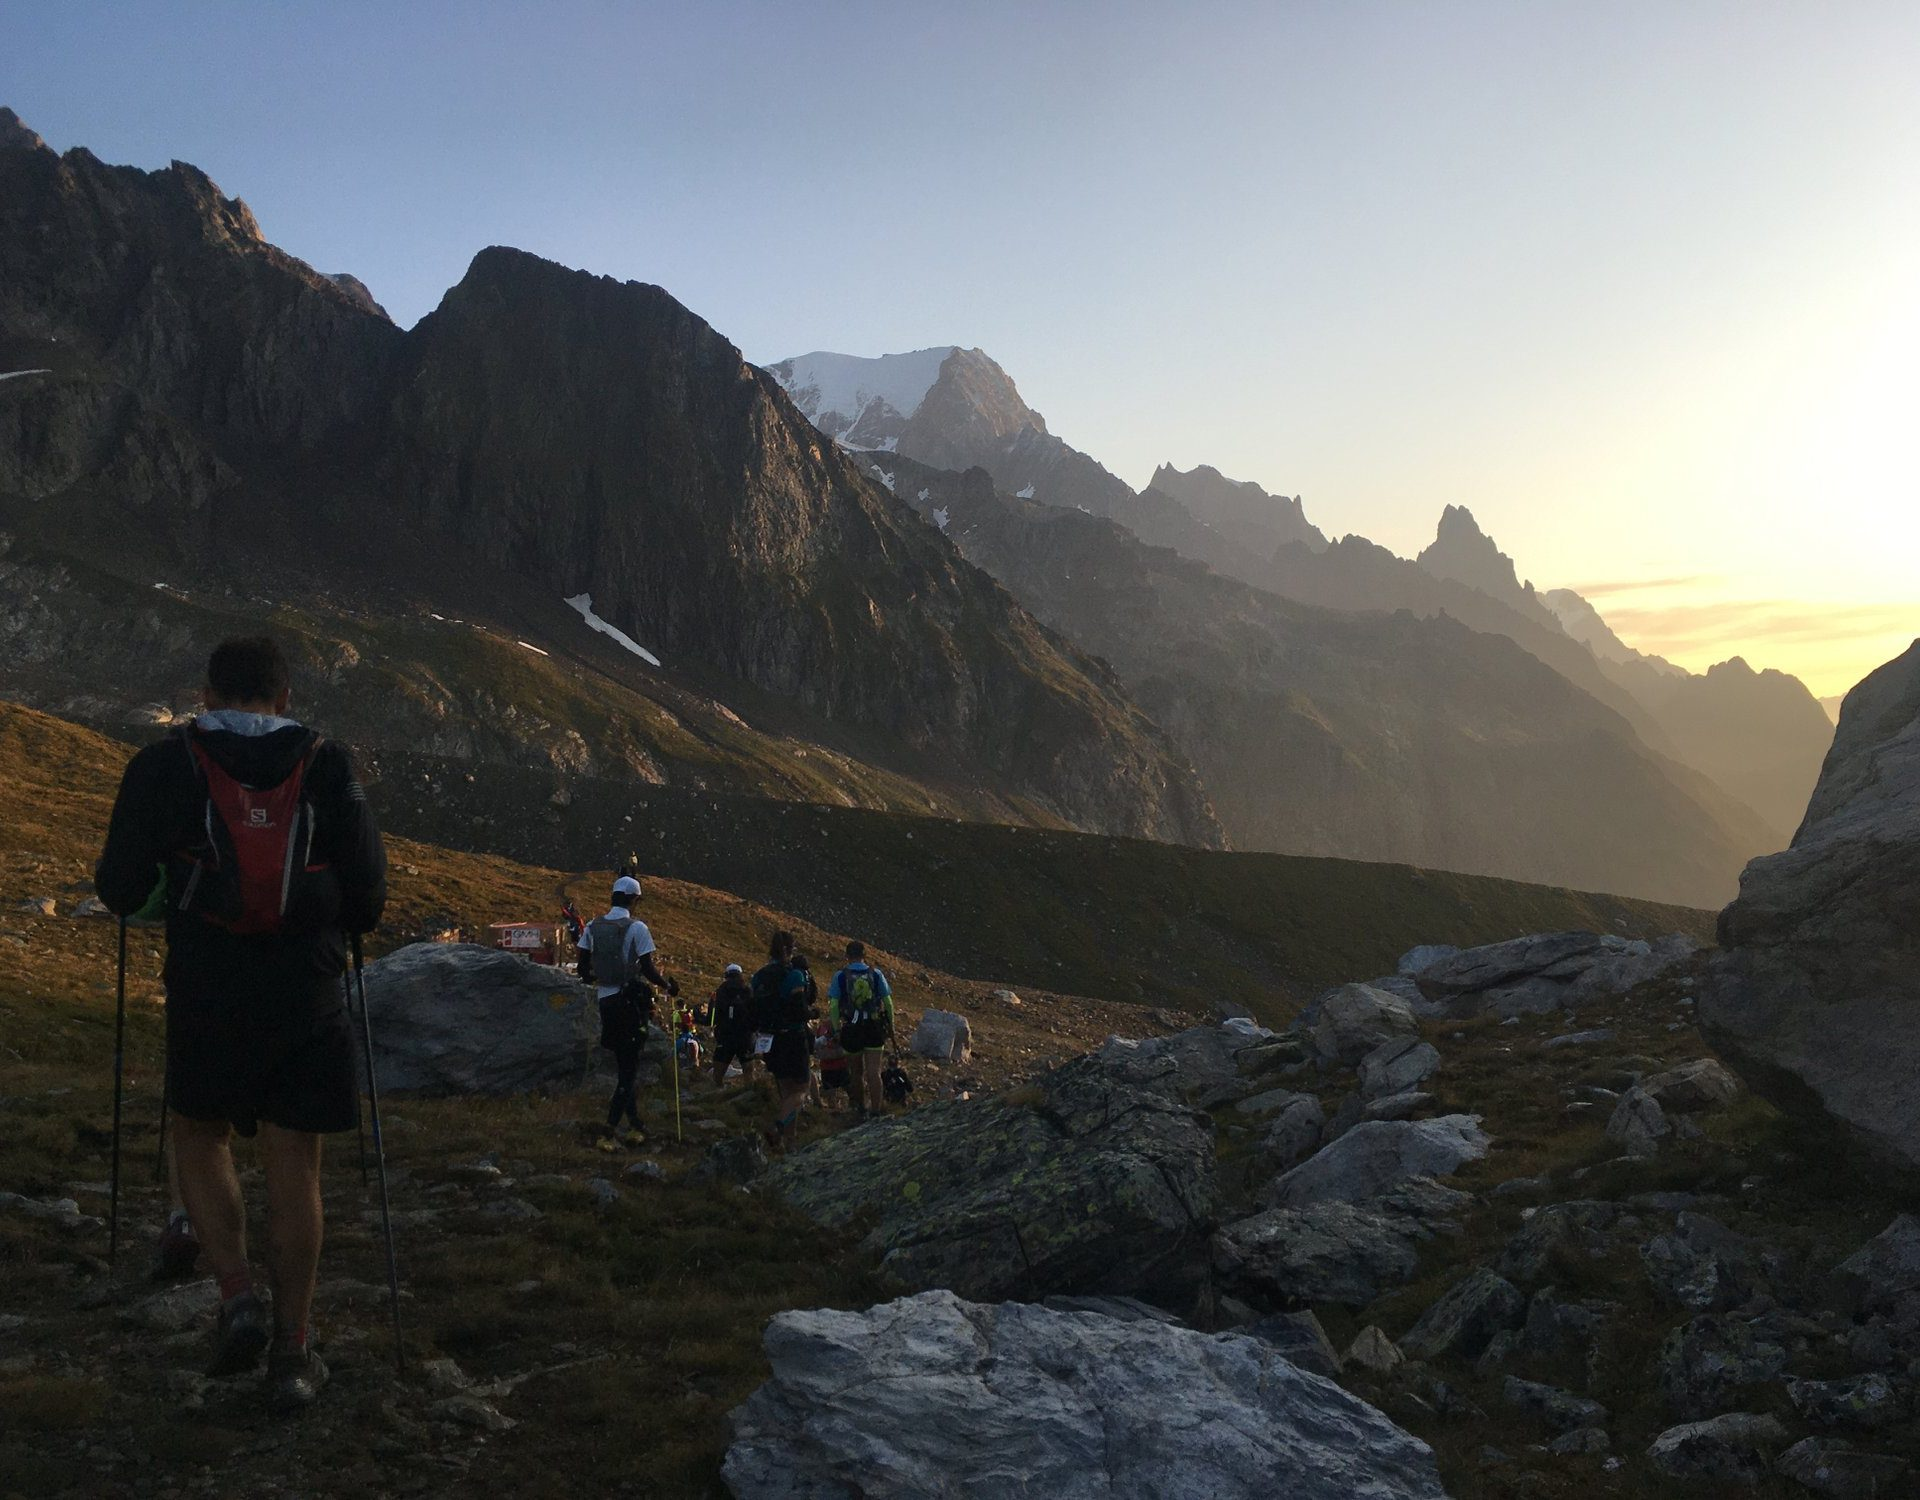 UTMB 2019: If A Lifeline Appears, Say Yes